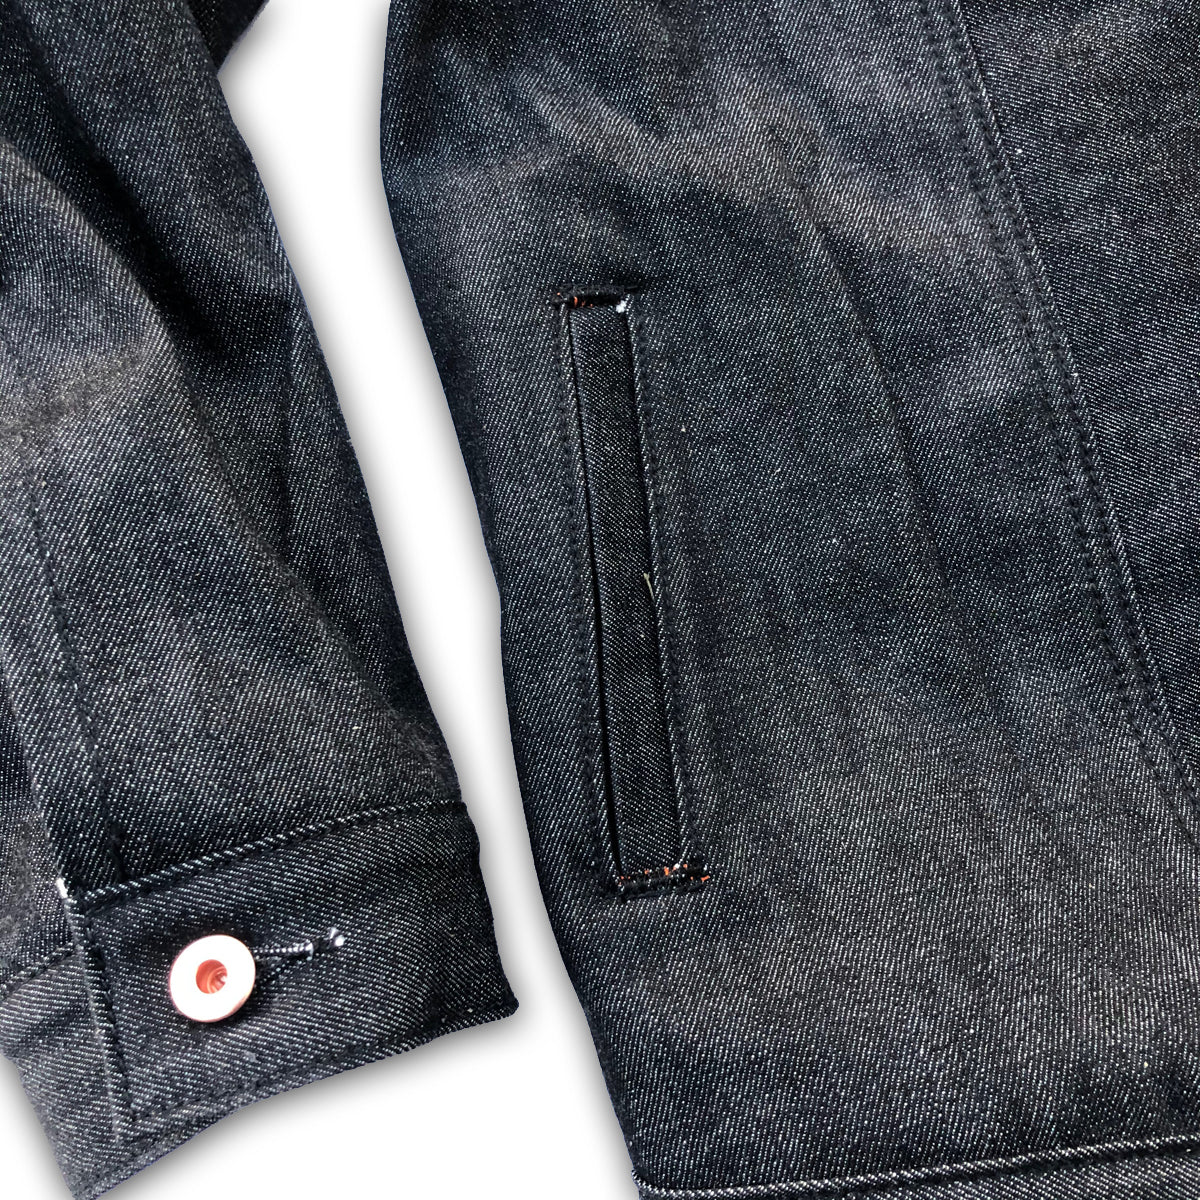 14oz Black Cone Mills White Selvage Type III Jacket w/ Club Collar {Limited Quantities}